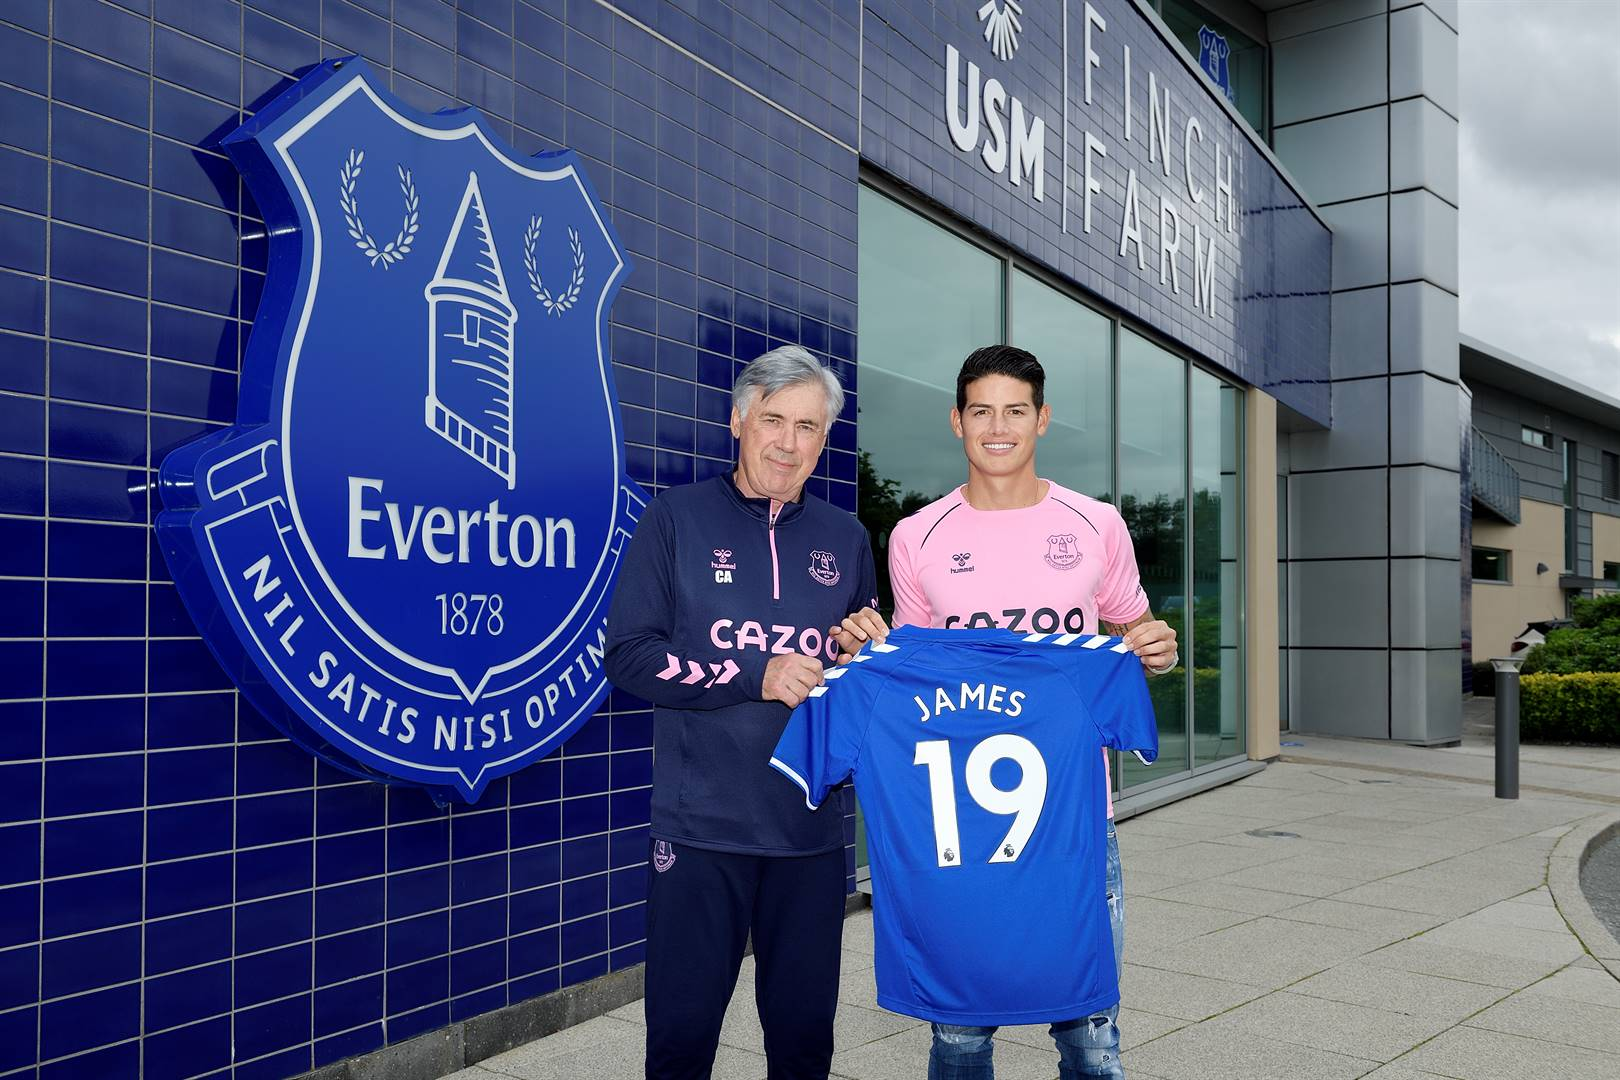 Carlo Ancelotti and James Rodríguez pose for a photo before the Everton press conference at on September 10 in Halewood, England.Picture: Tony McArdle/Everton FC via Getty Images